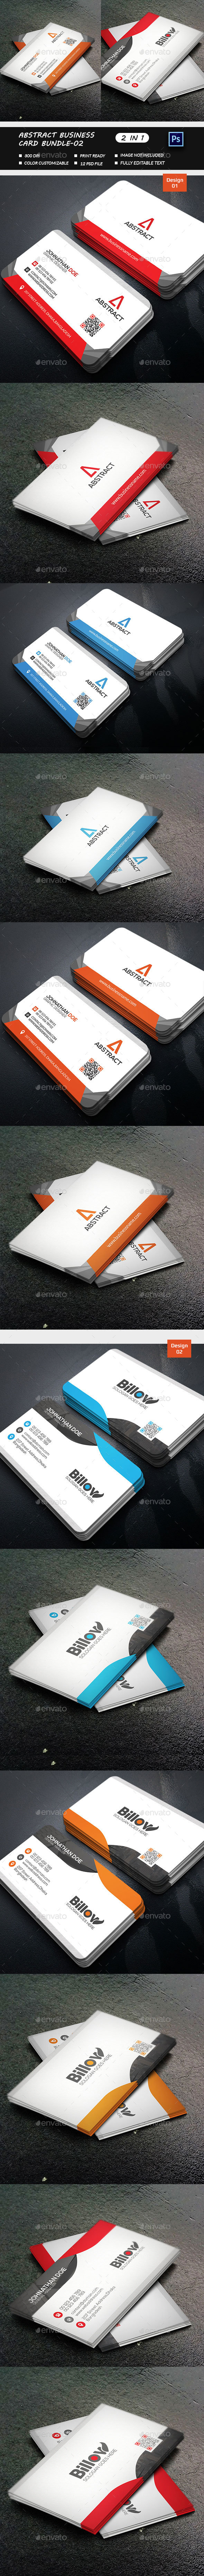 Abstract Business Card Bundle-02 - Business Cards Print Templates